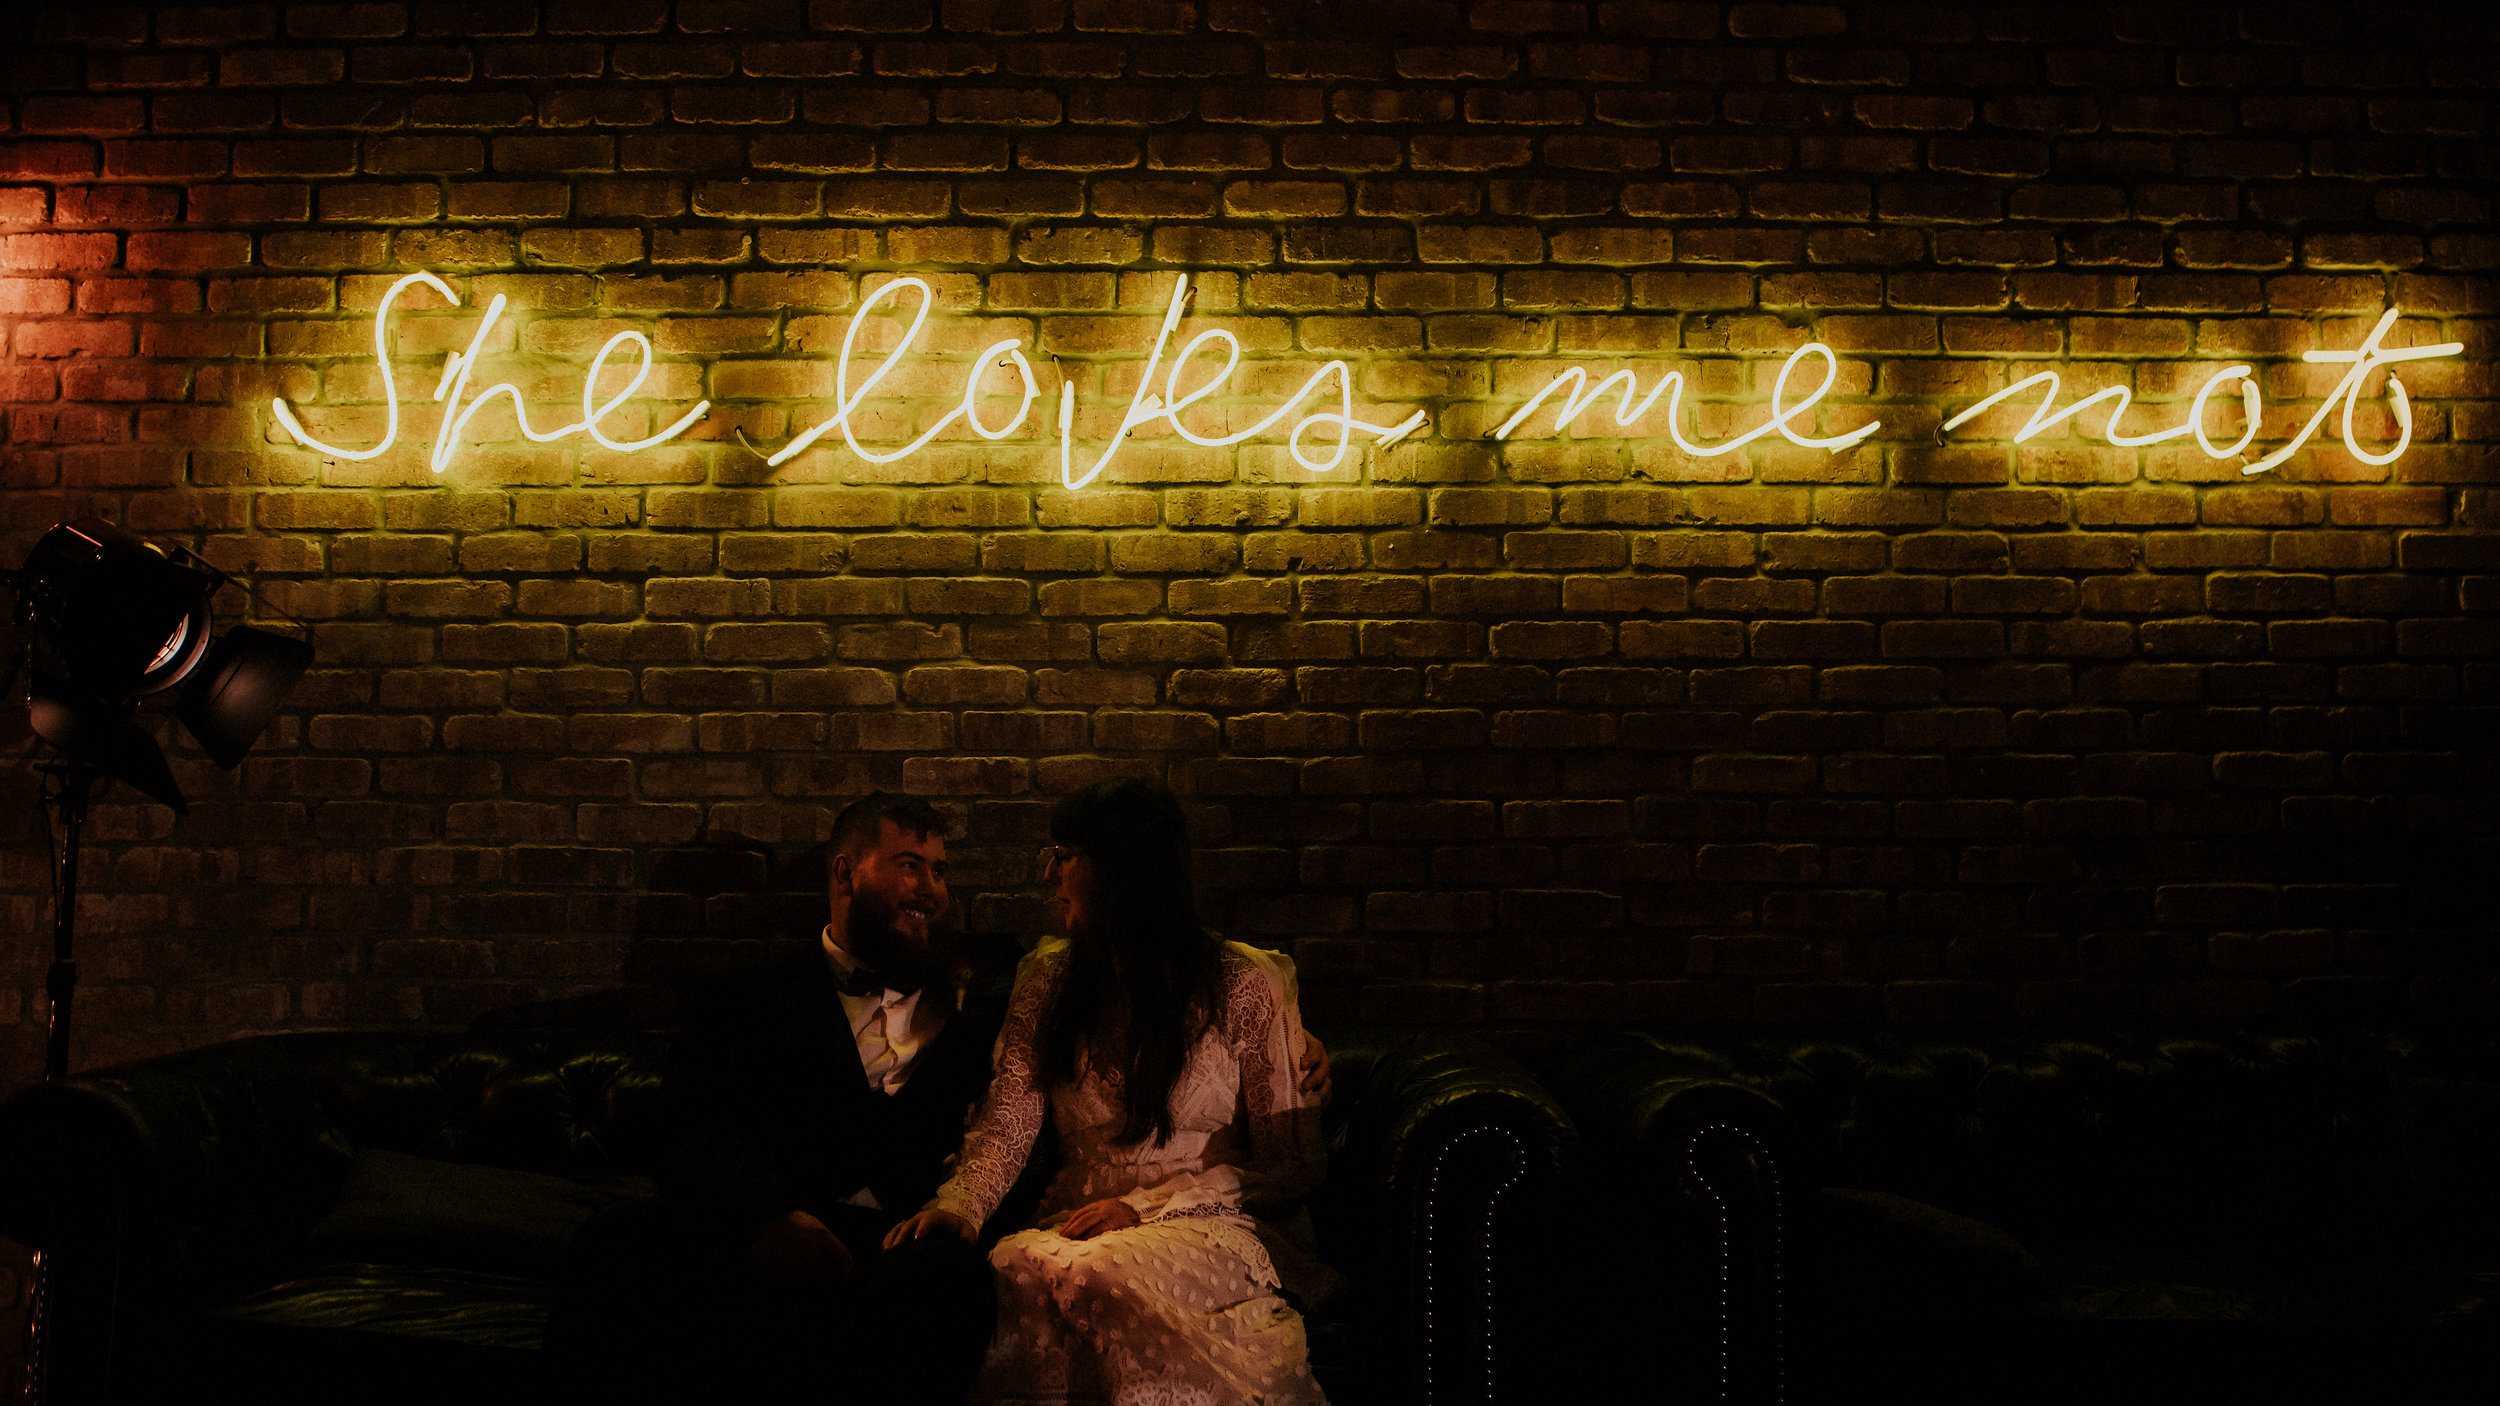 A first look in the Graffiti laden streets of Manchesters Northern Quarter to a fairy lit teepee in the city centre. Ciaran & Steph's Manchester wedding is filled with Christmas awesomeness.